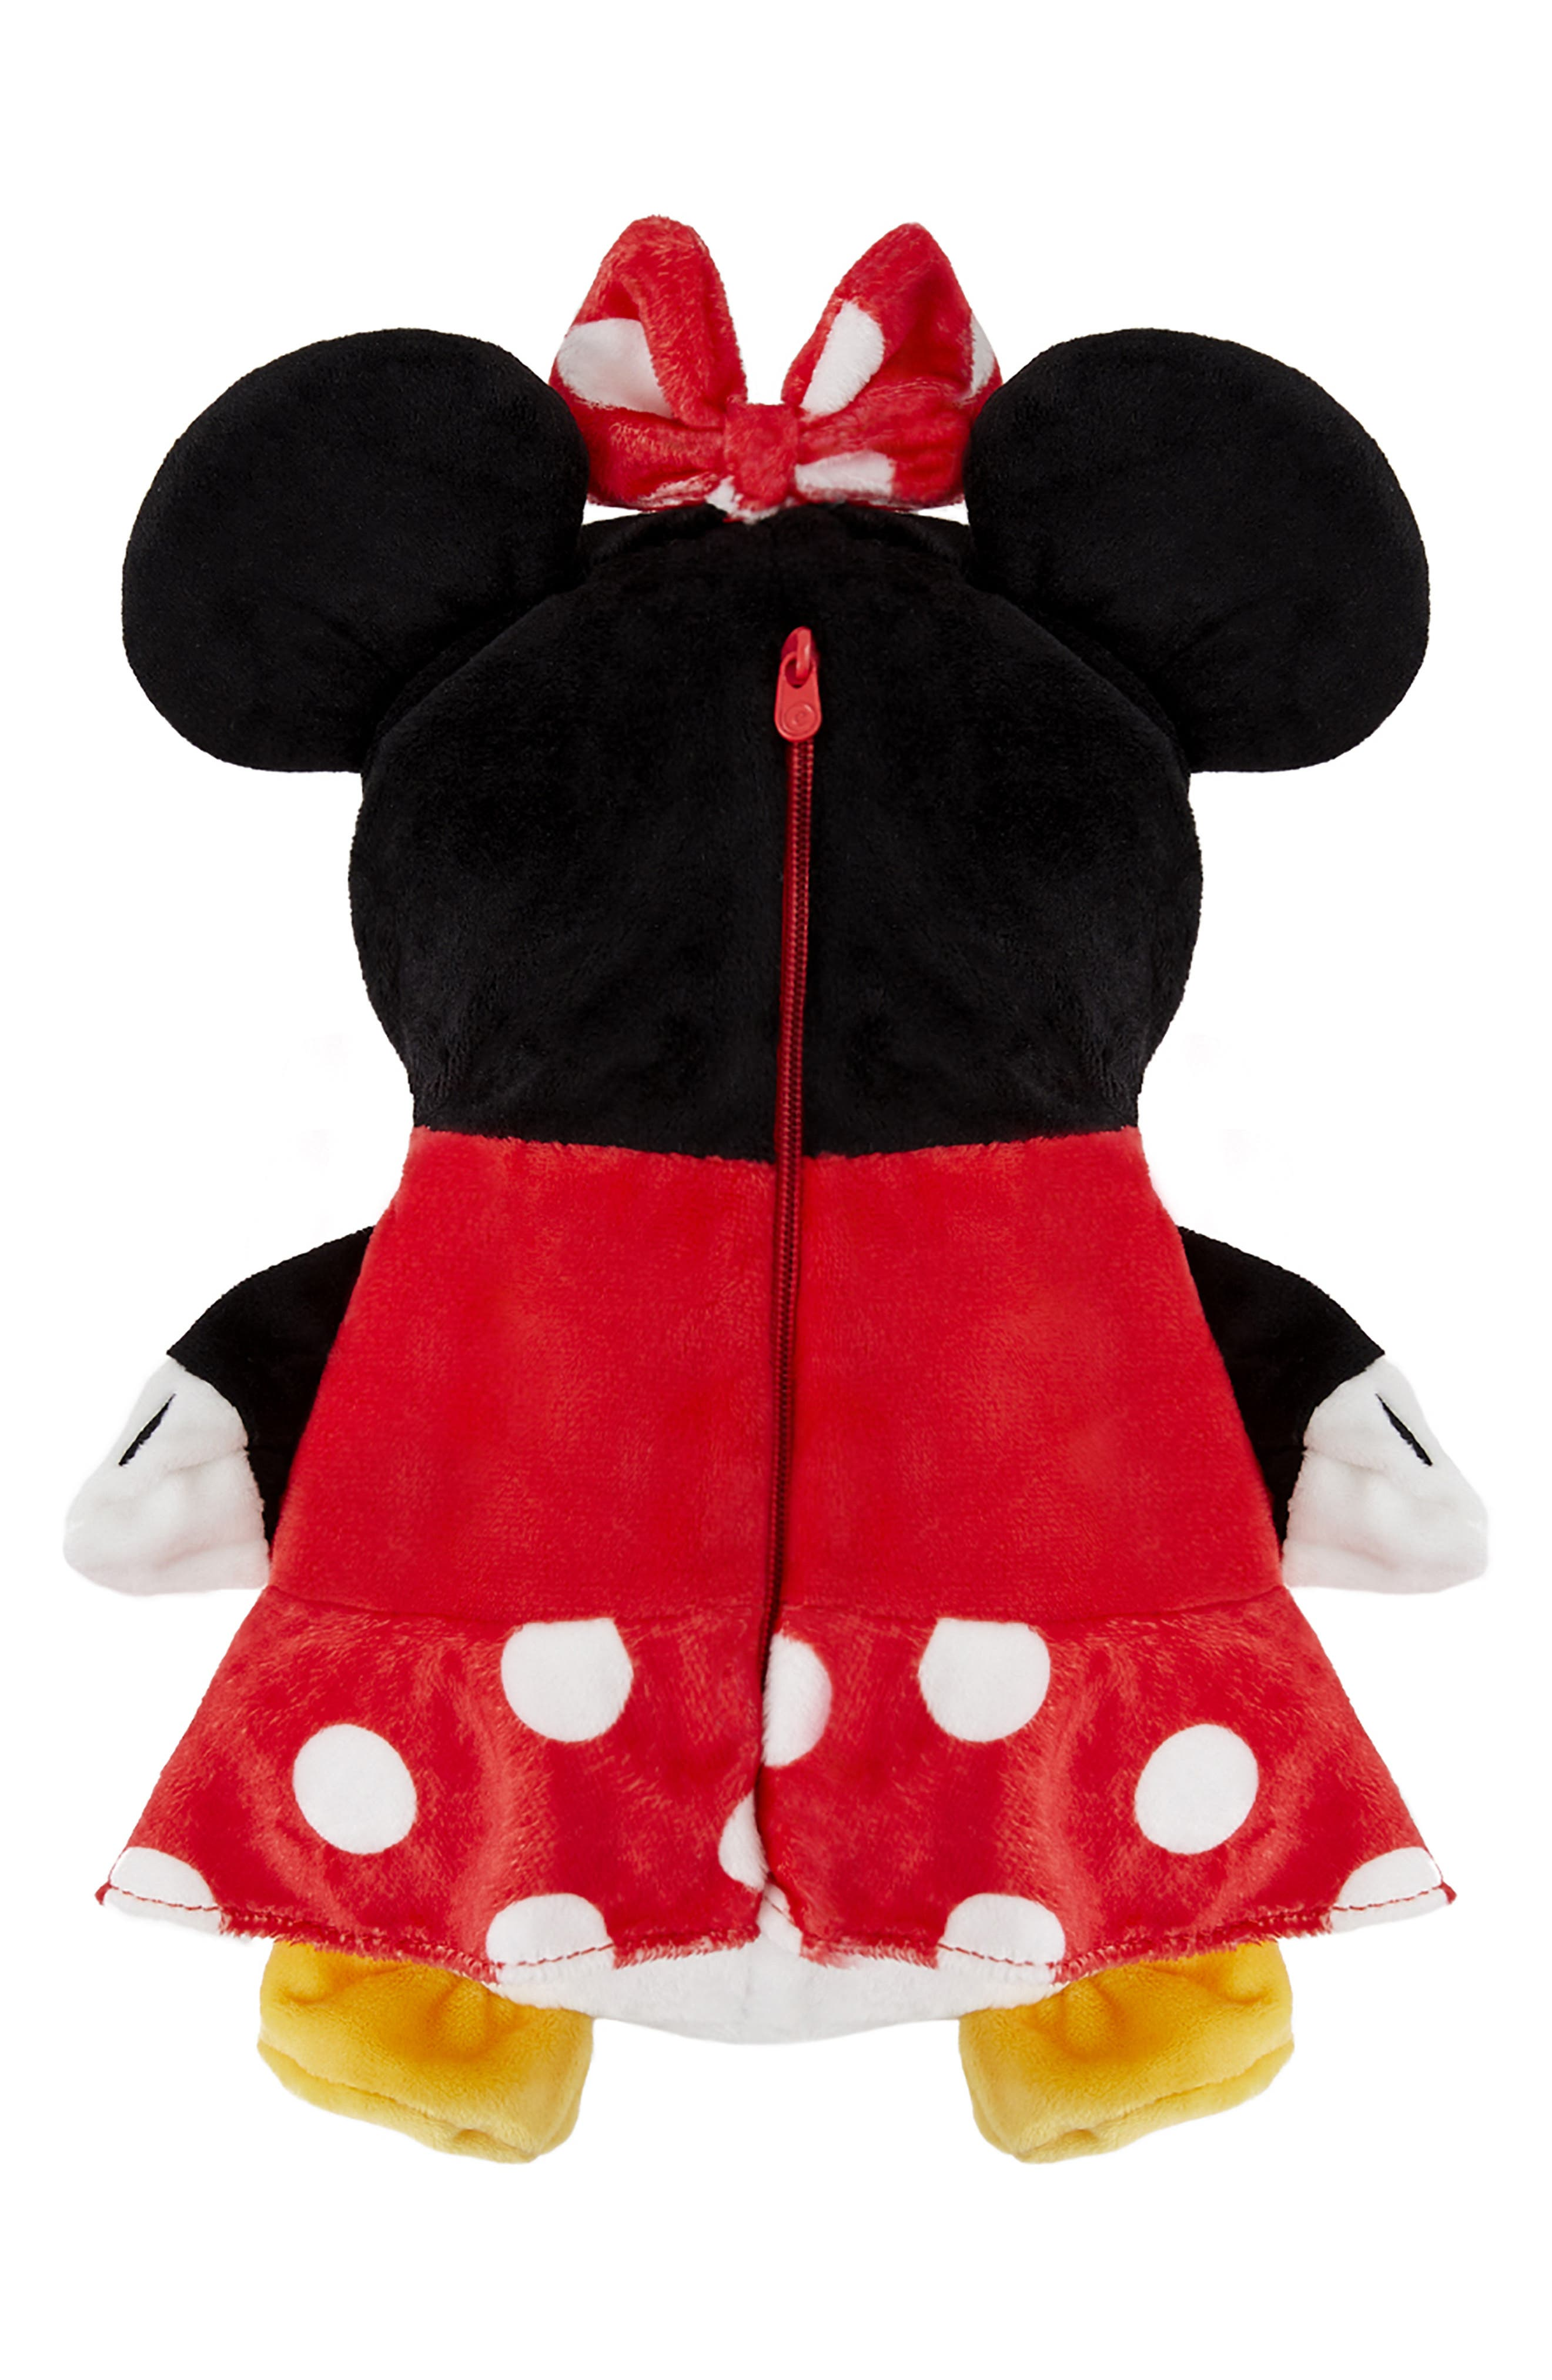 Cubcoats Disney Minnie Mouse 2 In 1 Stuffed Animal Hoodie Toddler